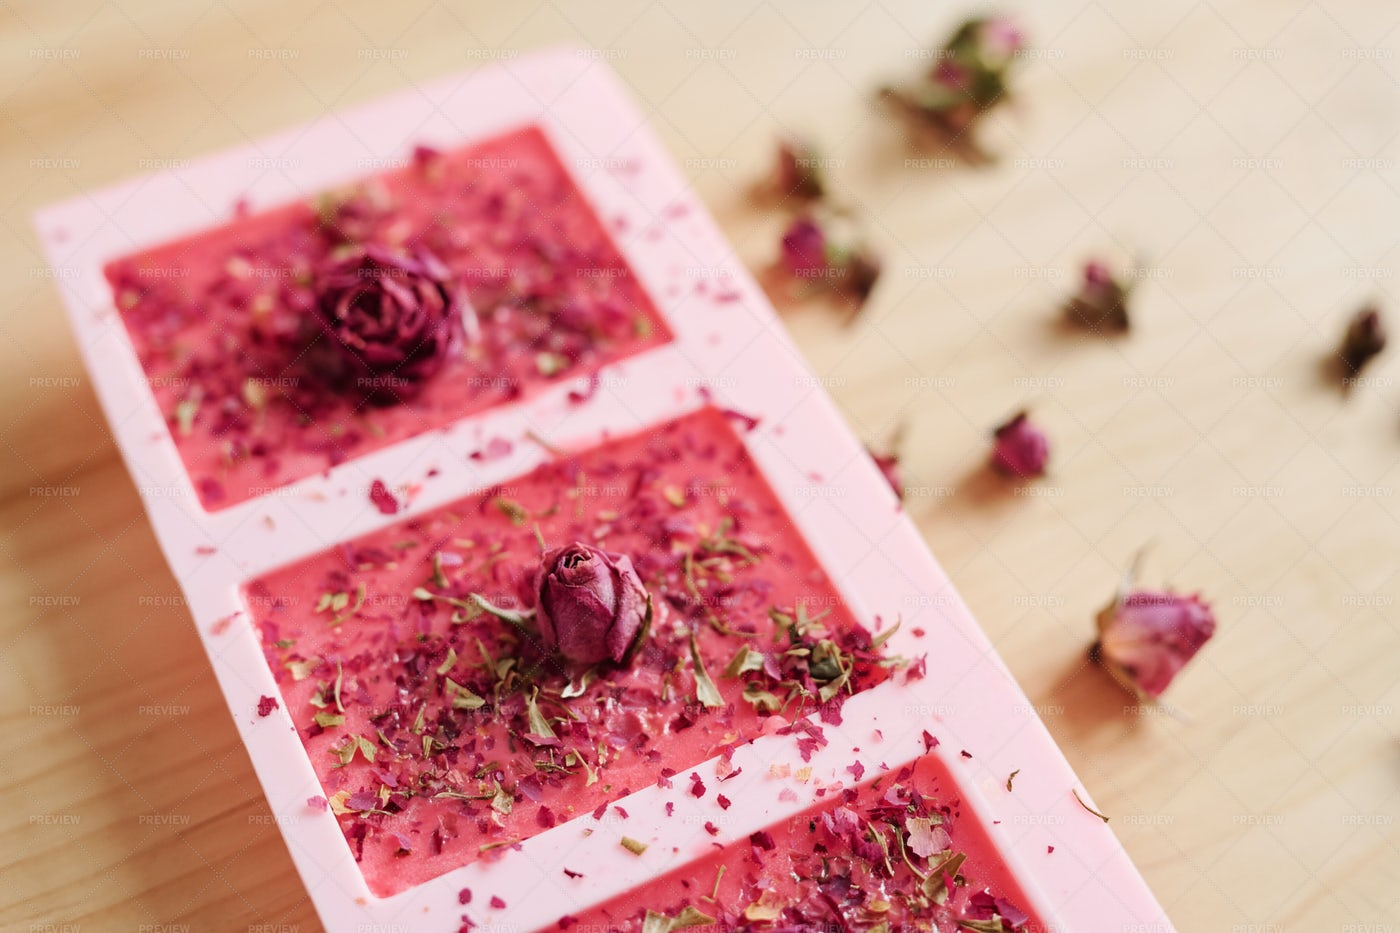 Handmade Soap Sprinkled By Grated...: Stock Photos